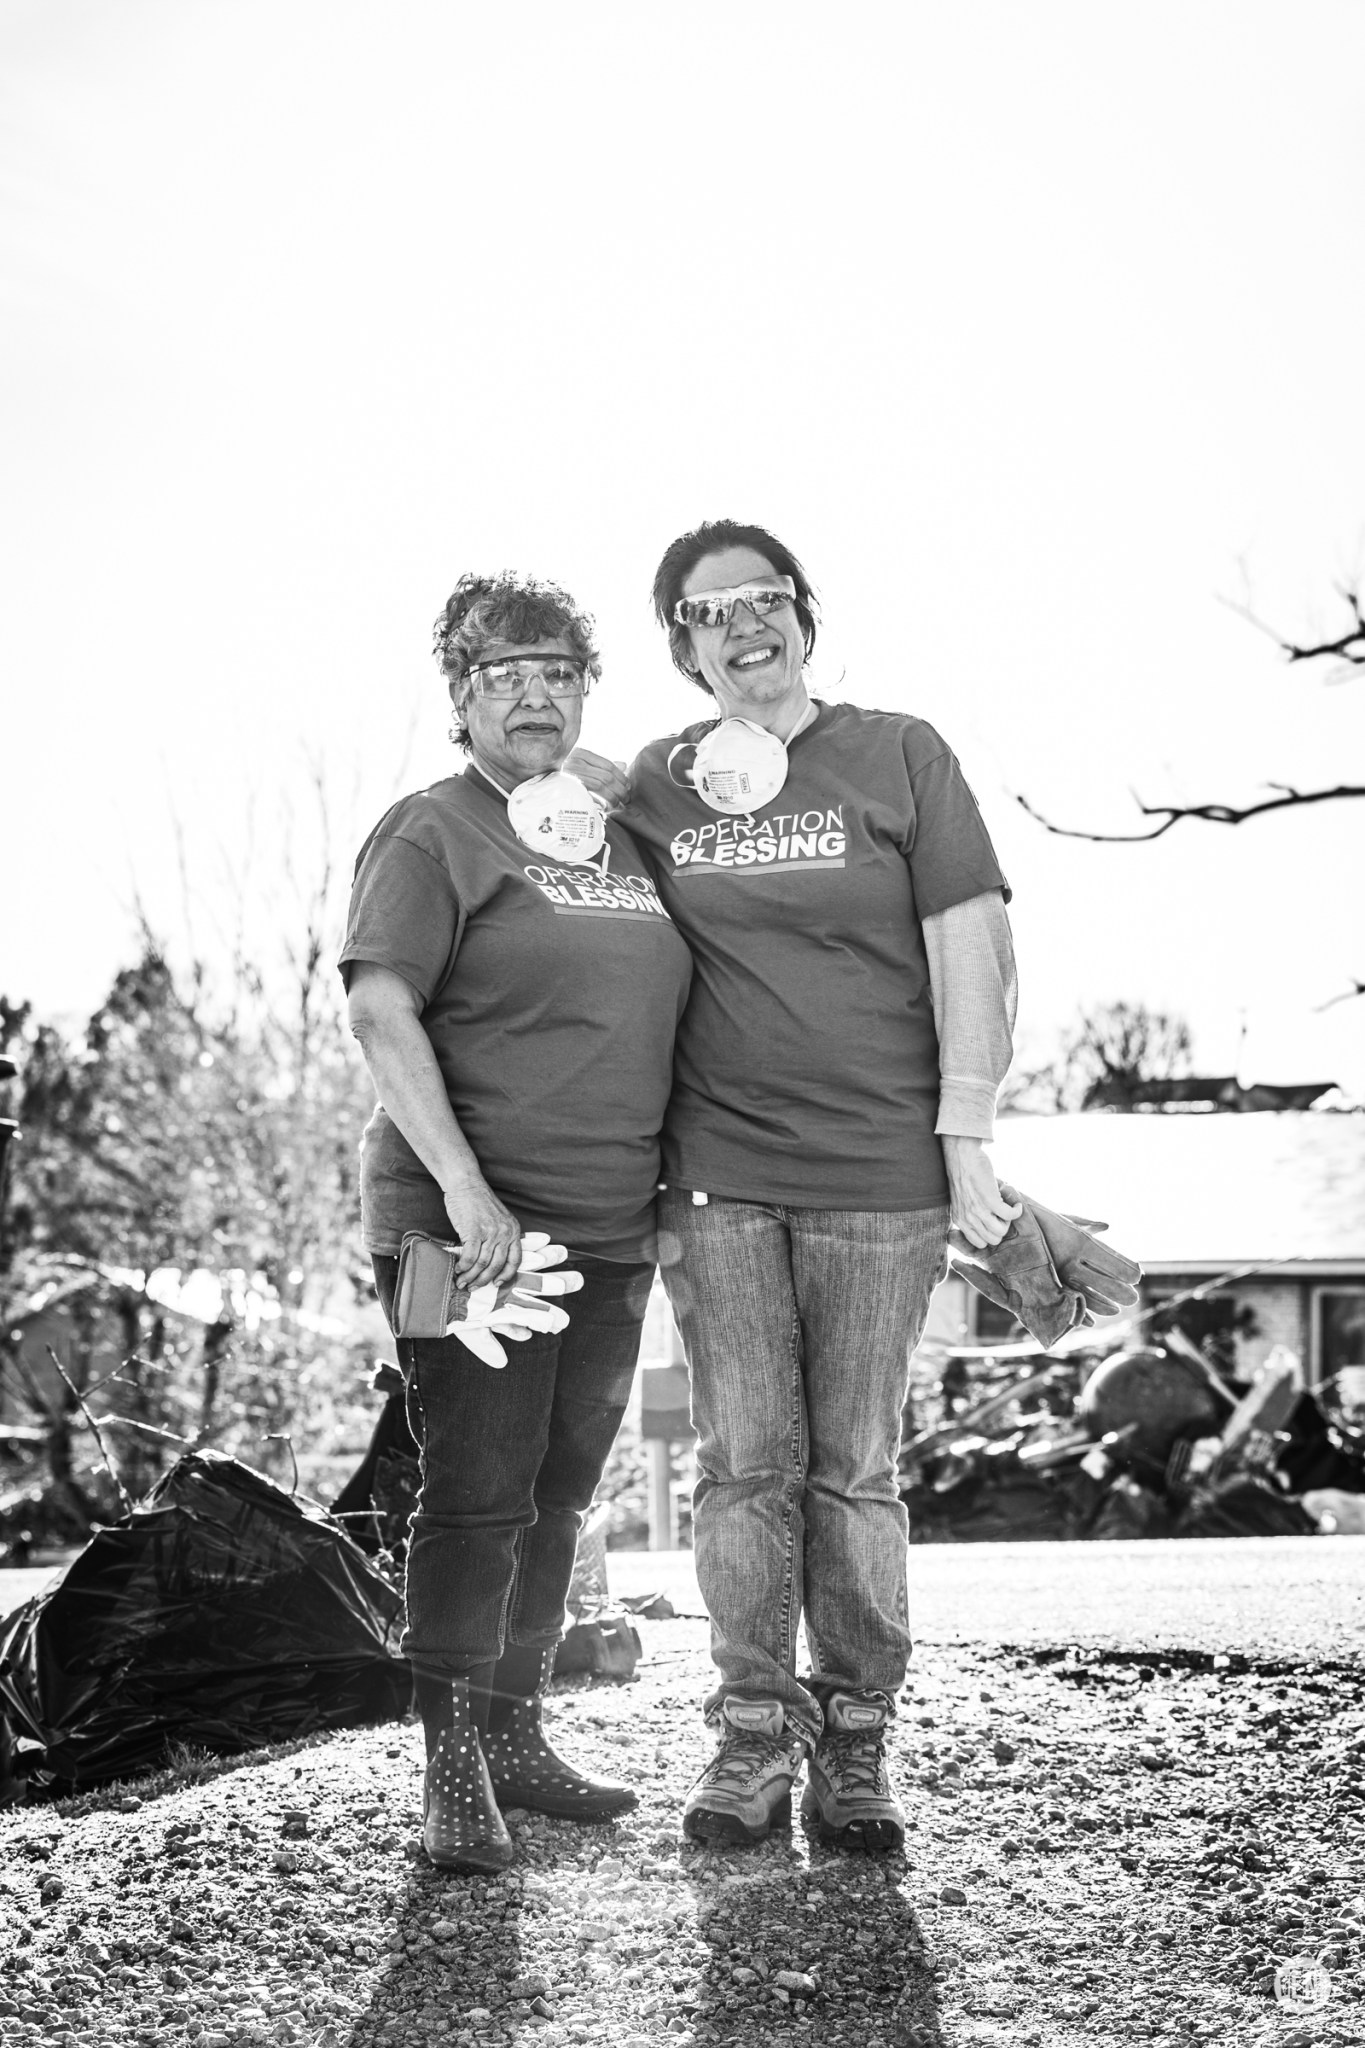 Martha Deshler and Jennifer Hatcher of Operation Blessing, from Hendersonville